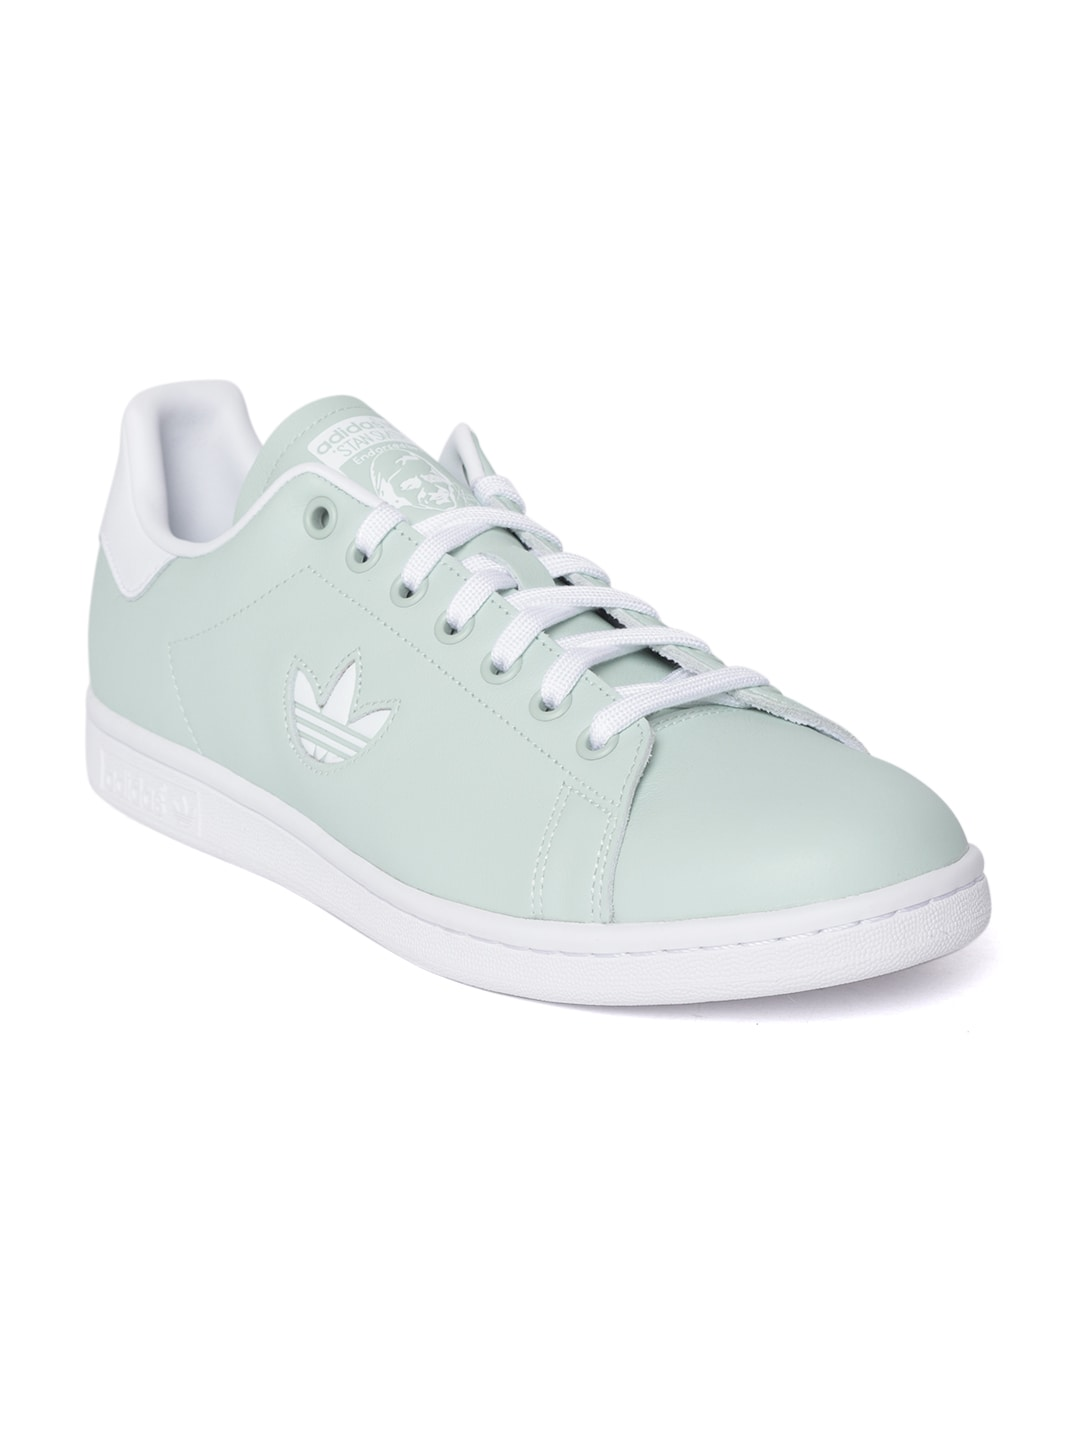 3222719ee15f Adidas Shoes - Buy Adidas Shoes for Men   Women Online - Myntra